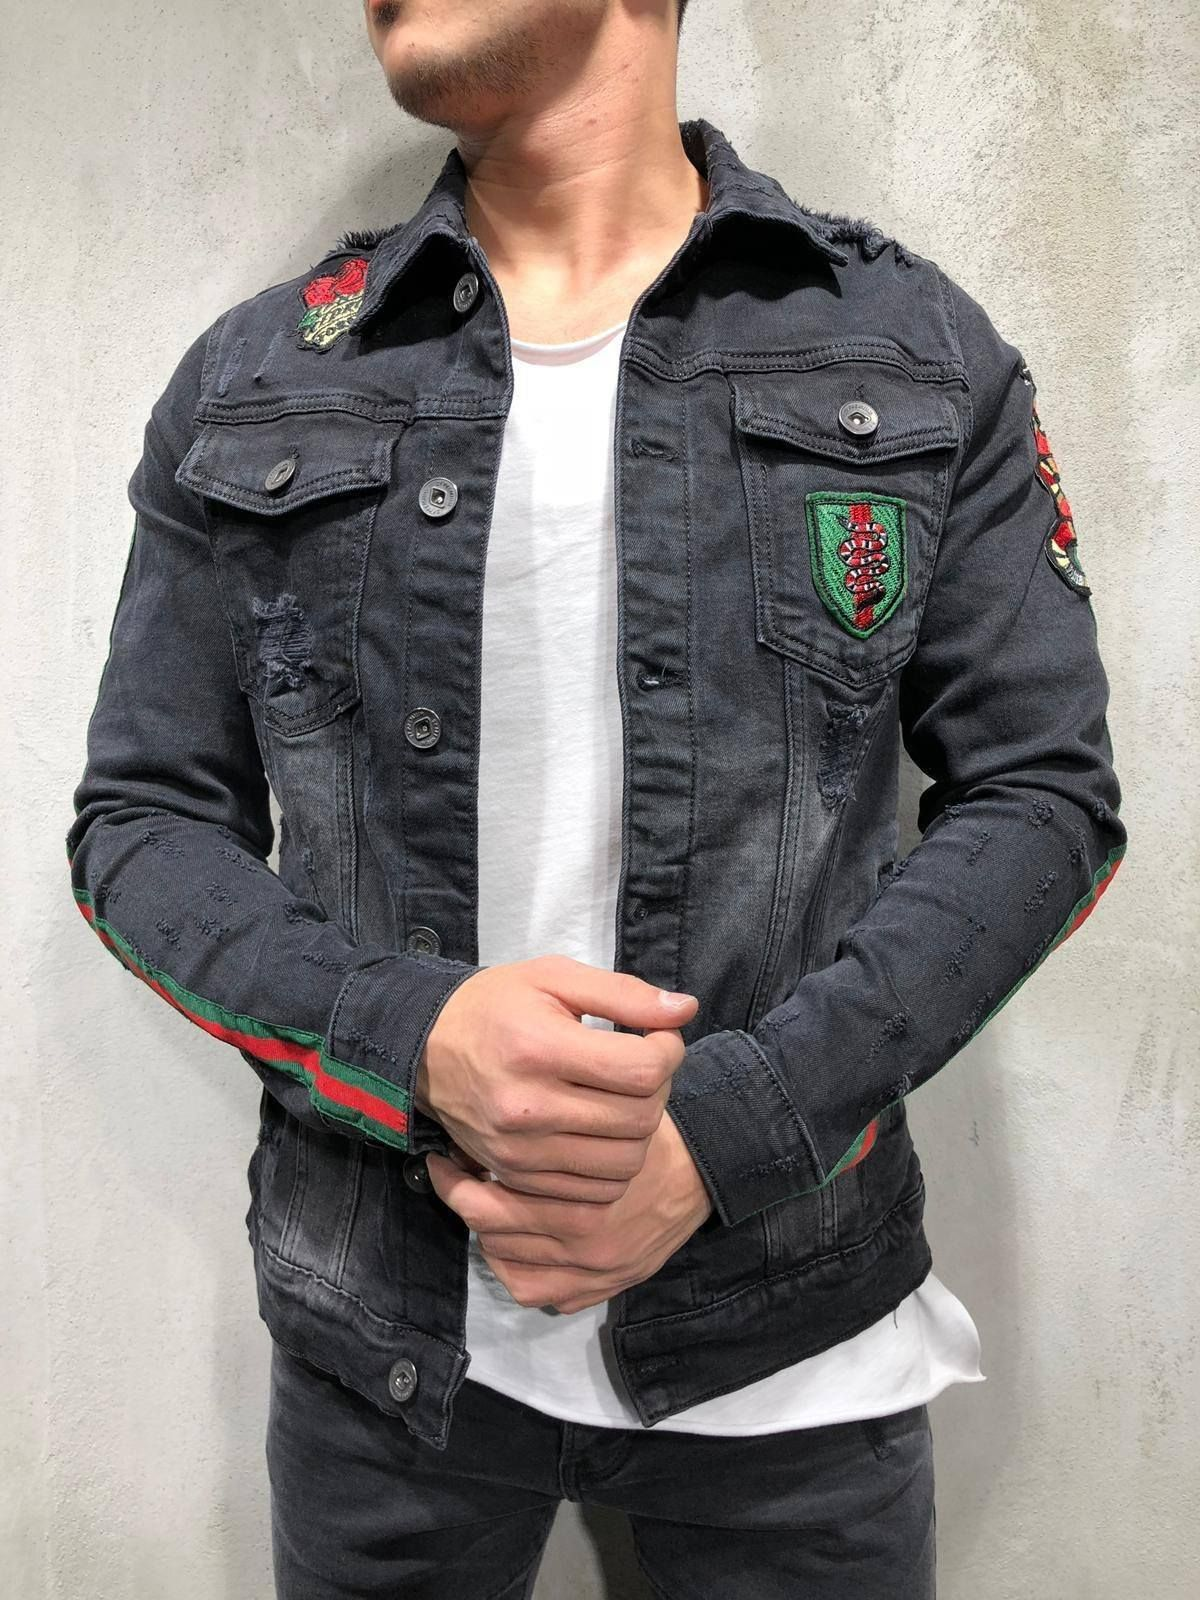 LoveClothing.com Military Style Black Gold Embroidery Cotton Jacket UK 6